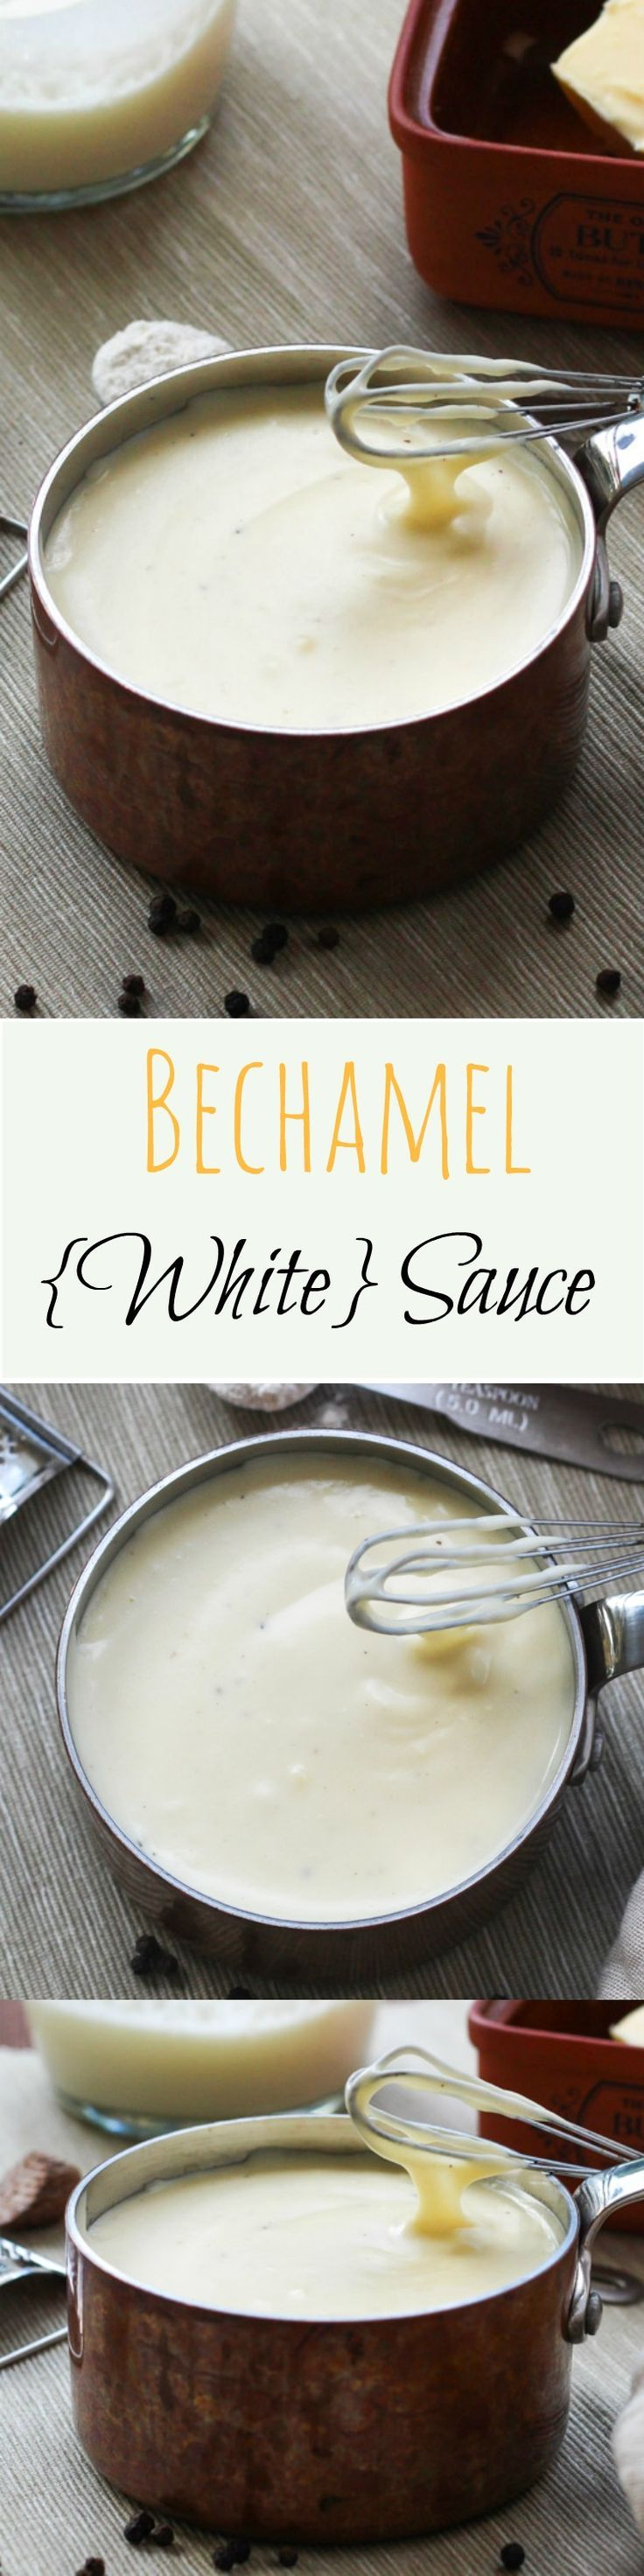 BECHAMEL SAUCE  (also known as WHITE  SAUCE)  -   simple to make, incredibly versatile & freezes brilliantly  ~  60g butter...1/3 c. plain flour...2 c. milk...125g cheddar cheese, grated...3 T. grated Parmesan cheese...pinch nutmeg... salt & pepper